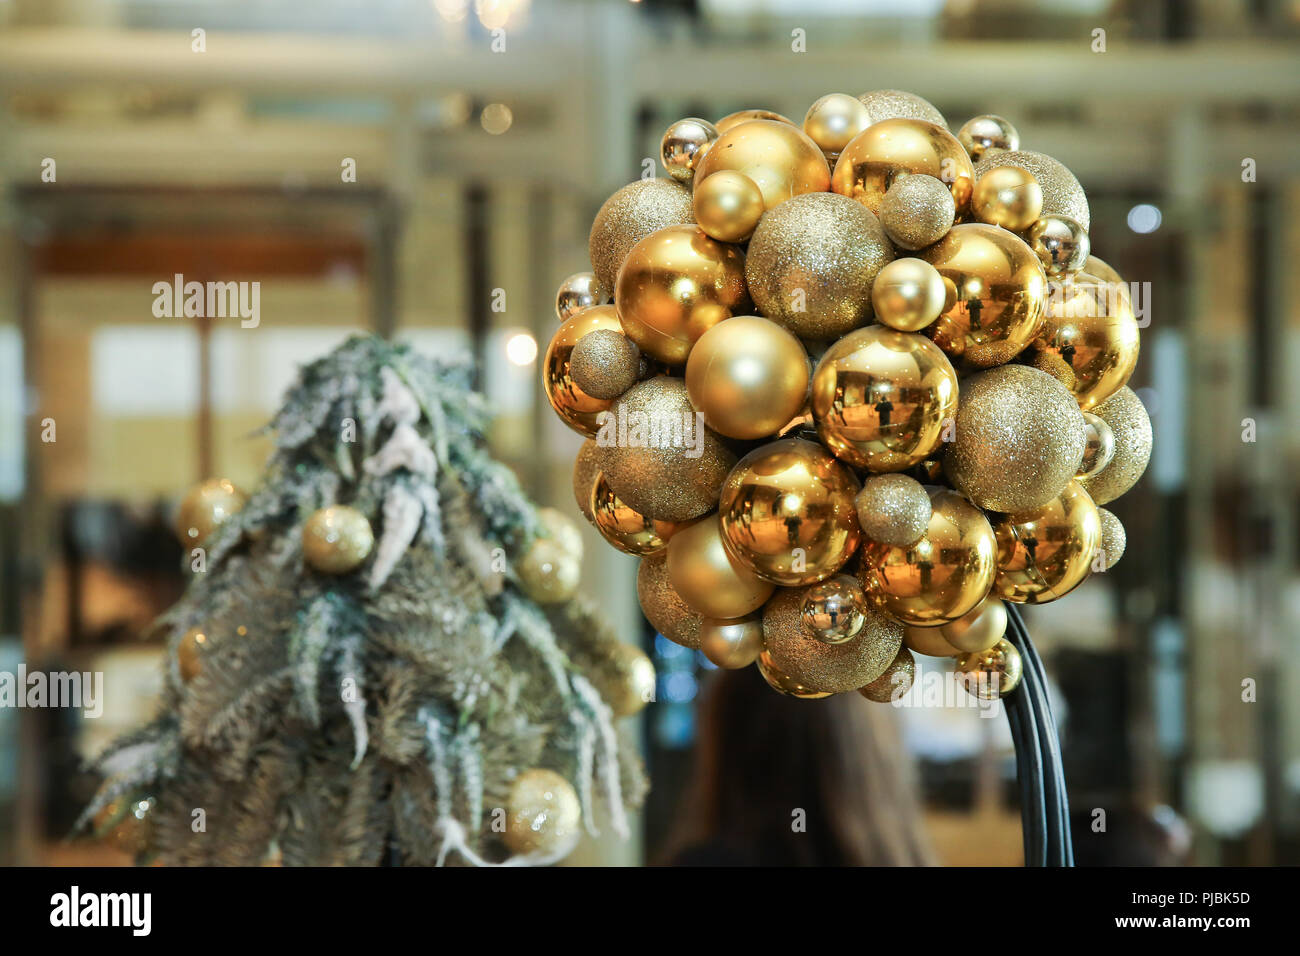 new year background new years round golden balls christmas balls close up picture three golden christmas sparkling balls against